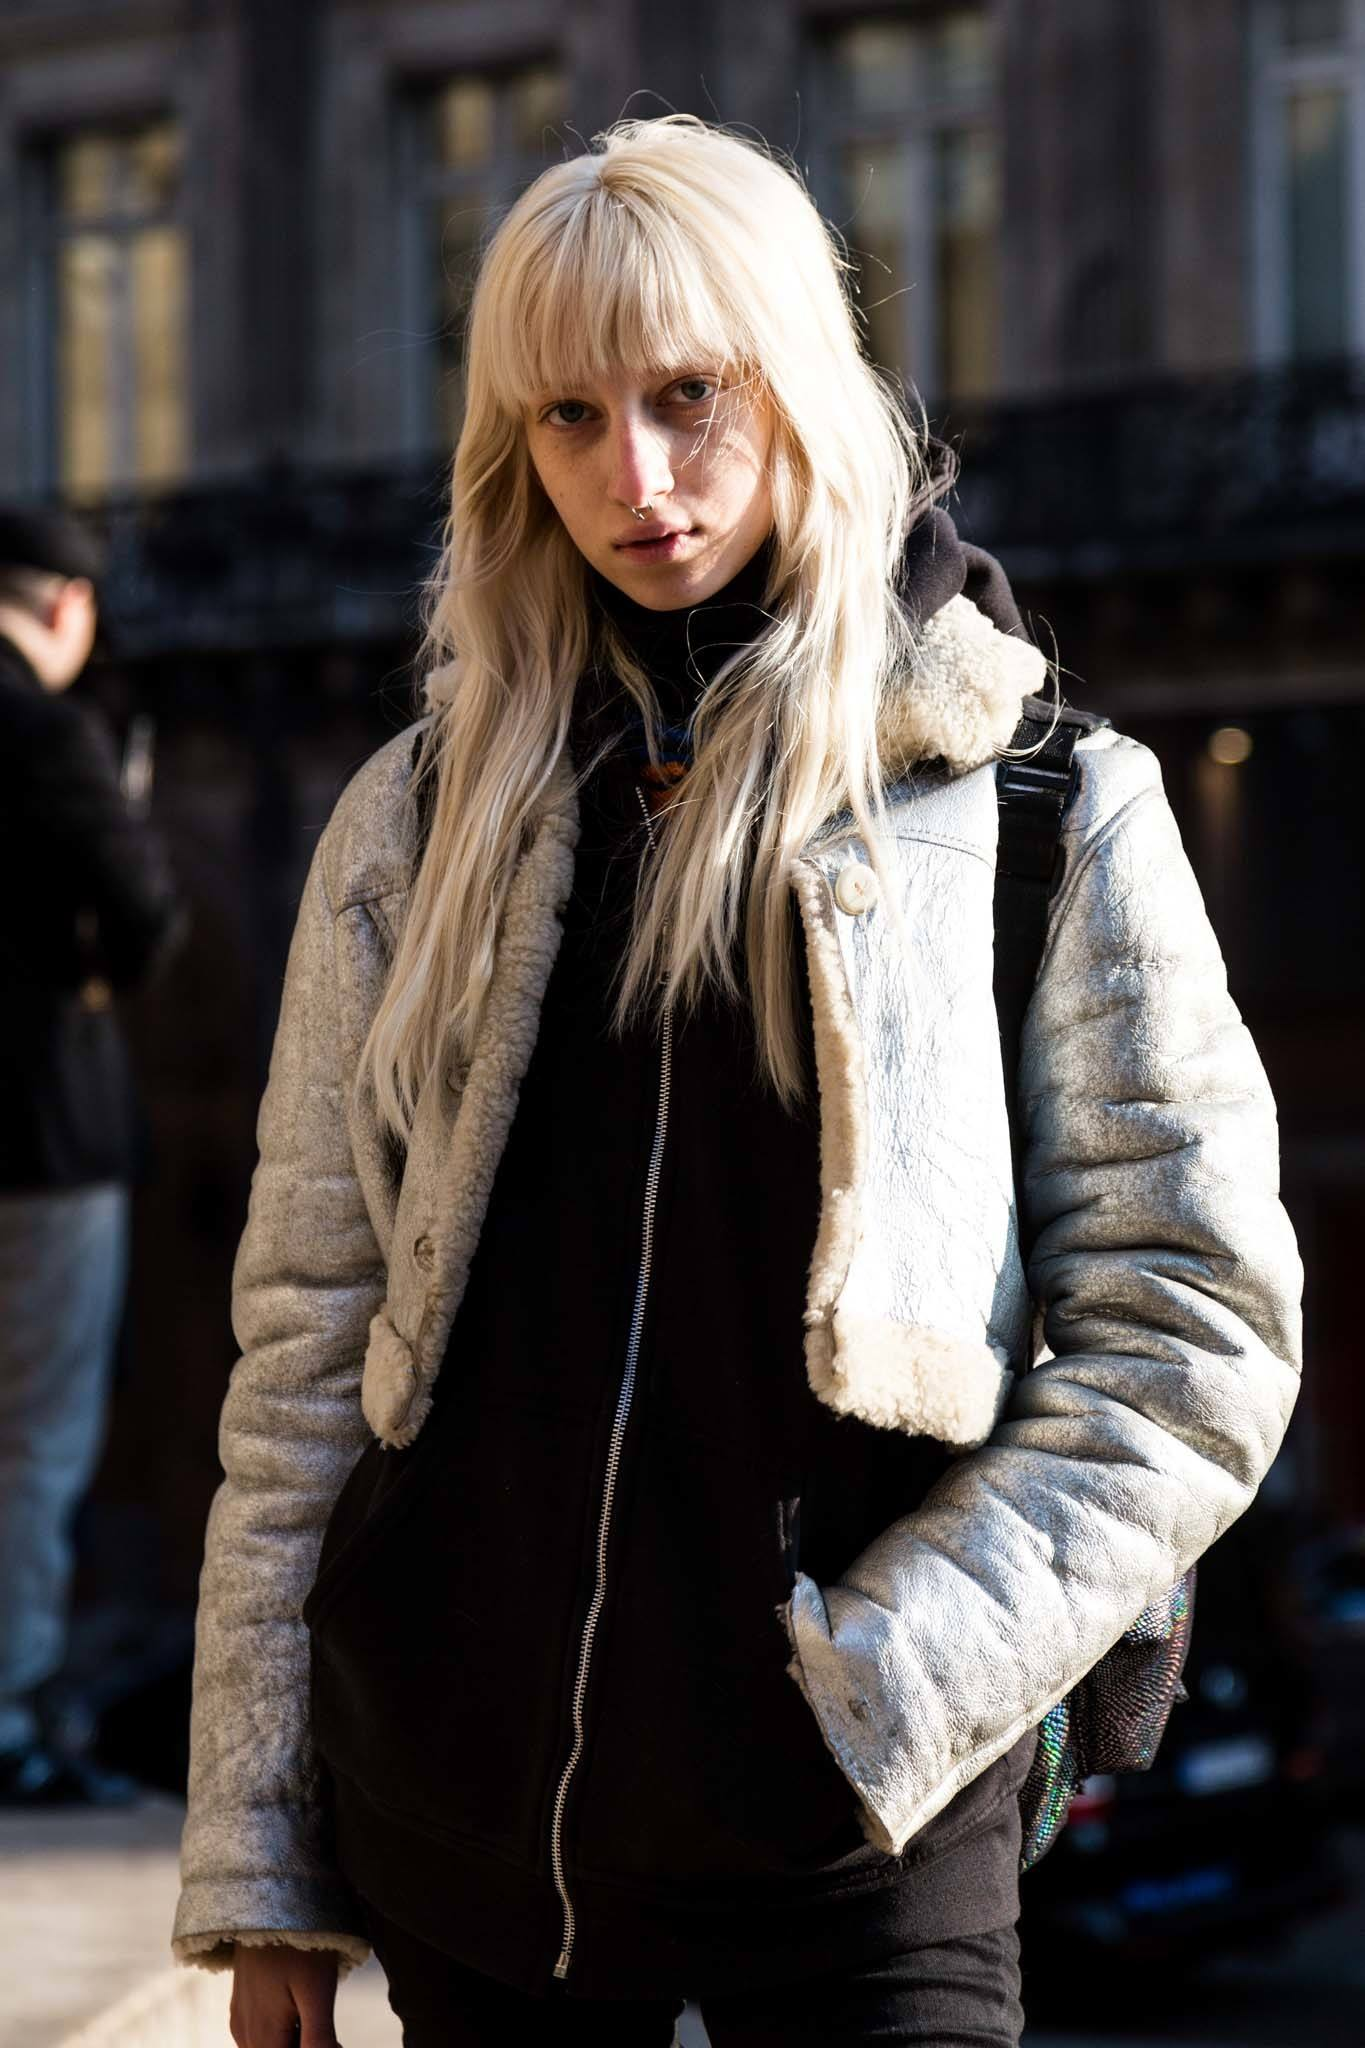 Shot of street style model with long ashy blonde hair and full bangs, wearing winter clothing and posing outside